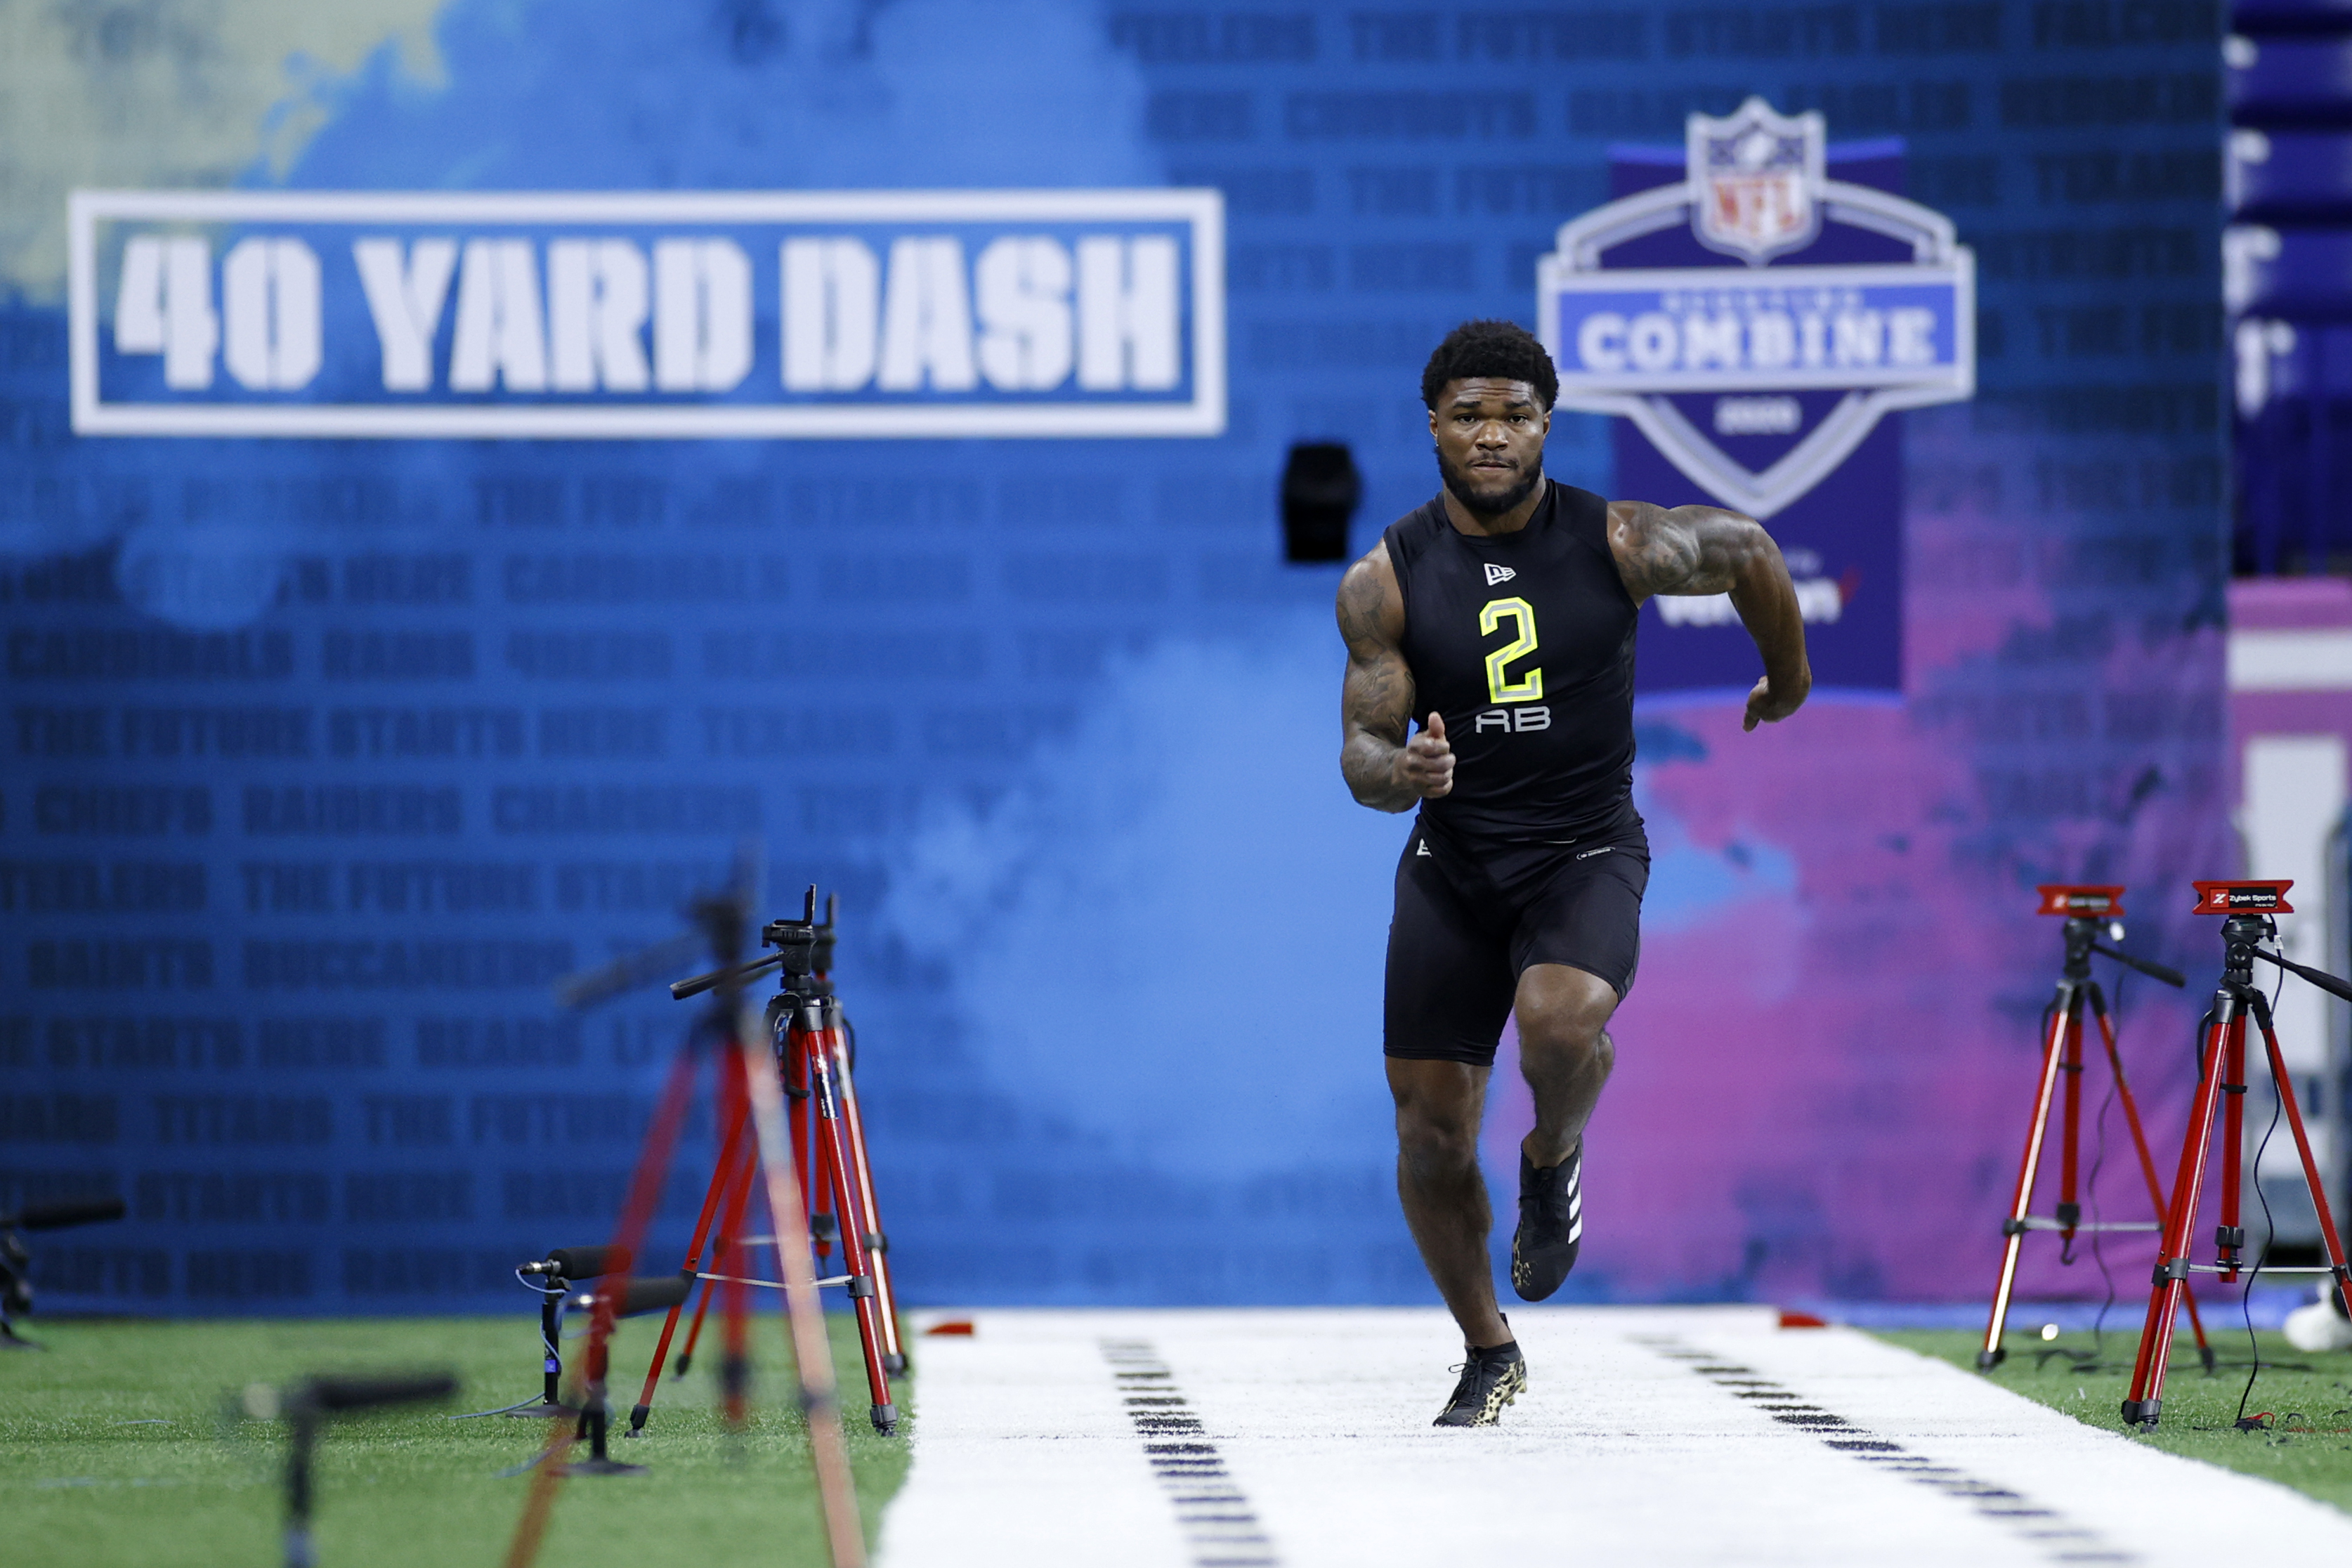 Florida State RB Cam Akers runs the 40-yard dash during the NFL Combine at Lucas Oil Stadium in Indianapolis. (Photo by Joe Robbins/Getty Images)